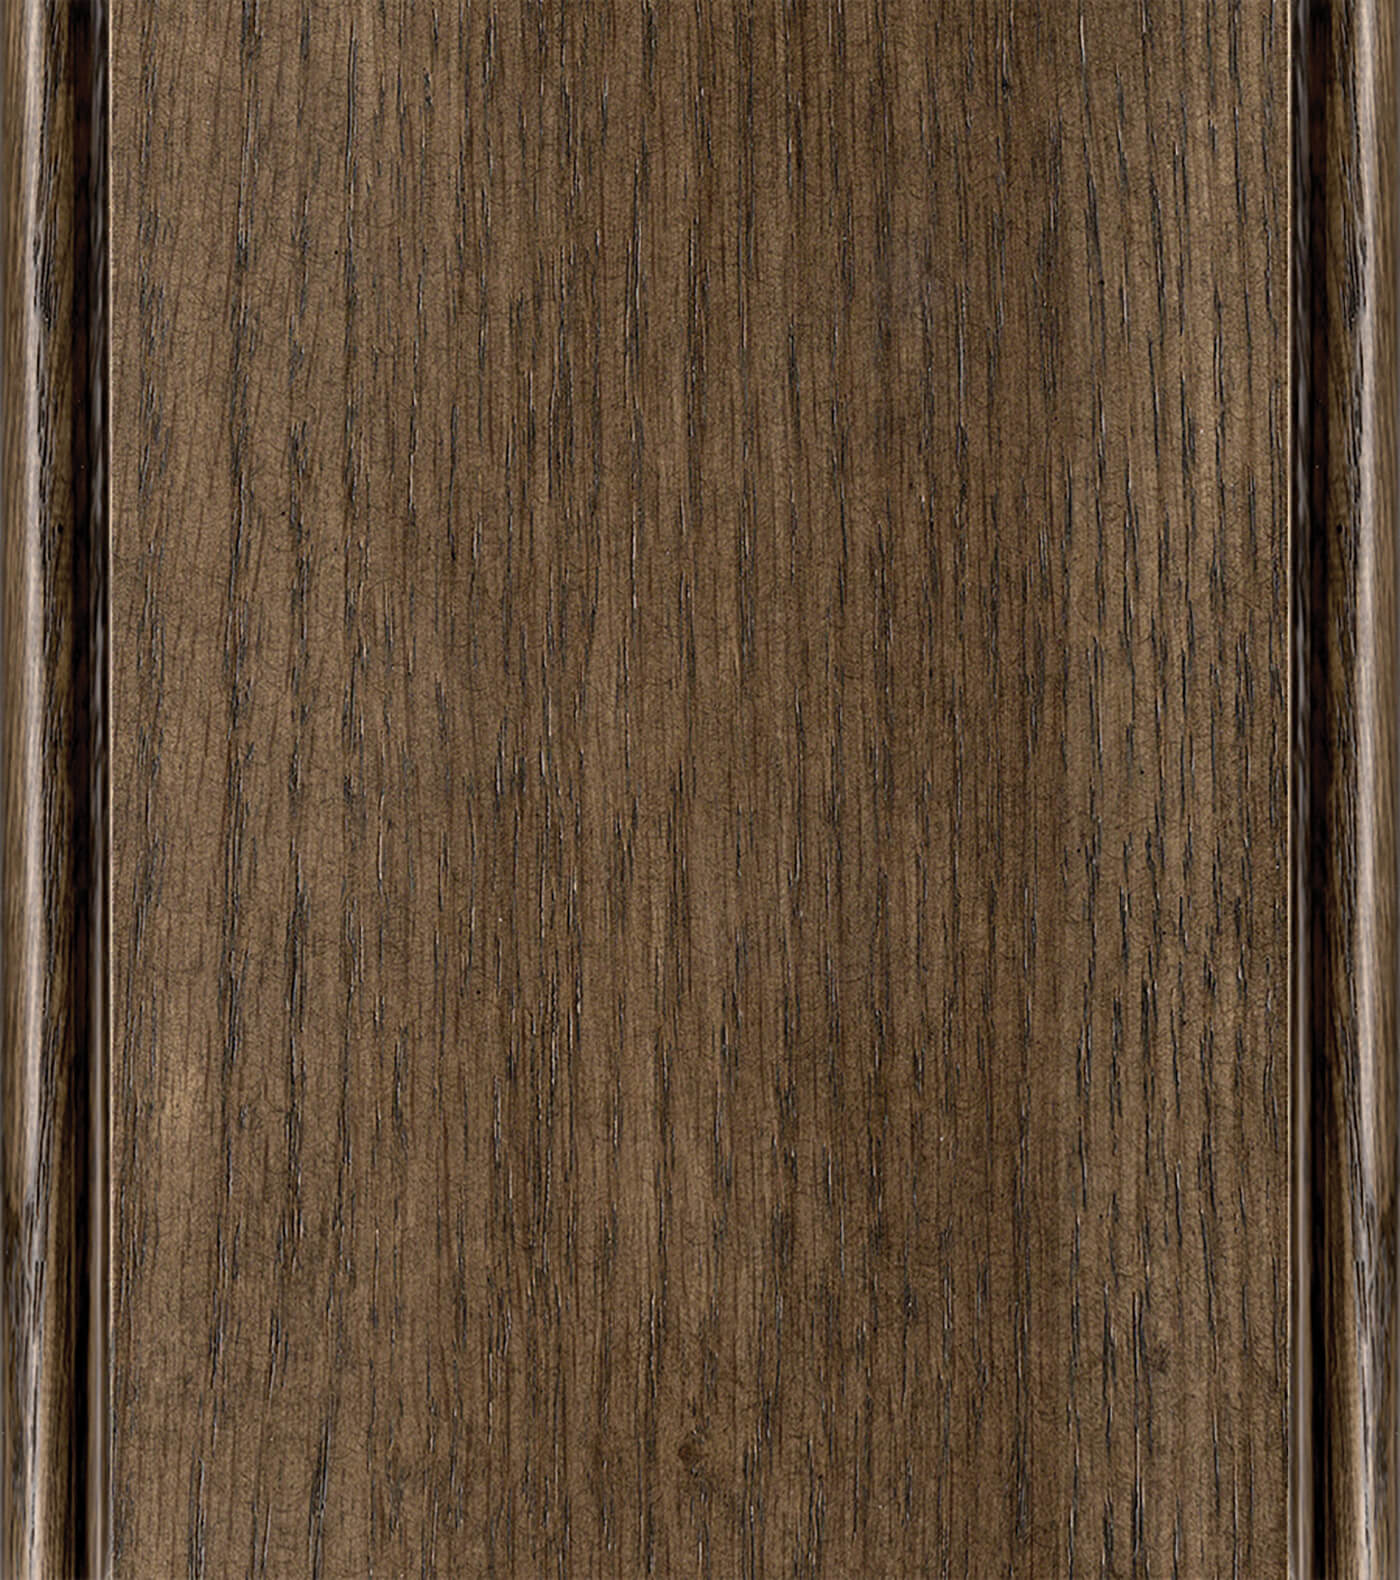 Feather Stain on Red Oak or Quarter-Sawn Red Oak